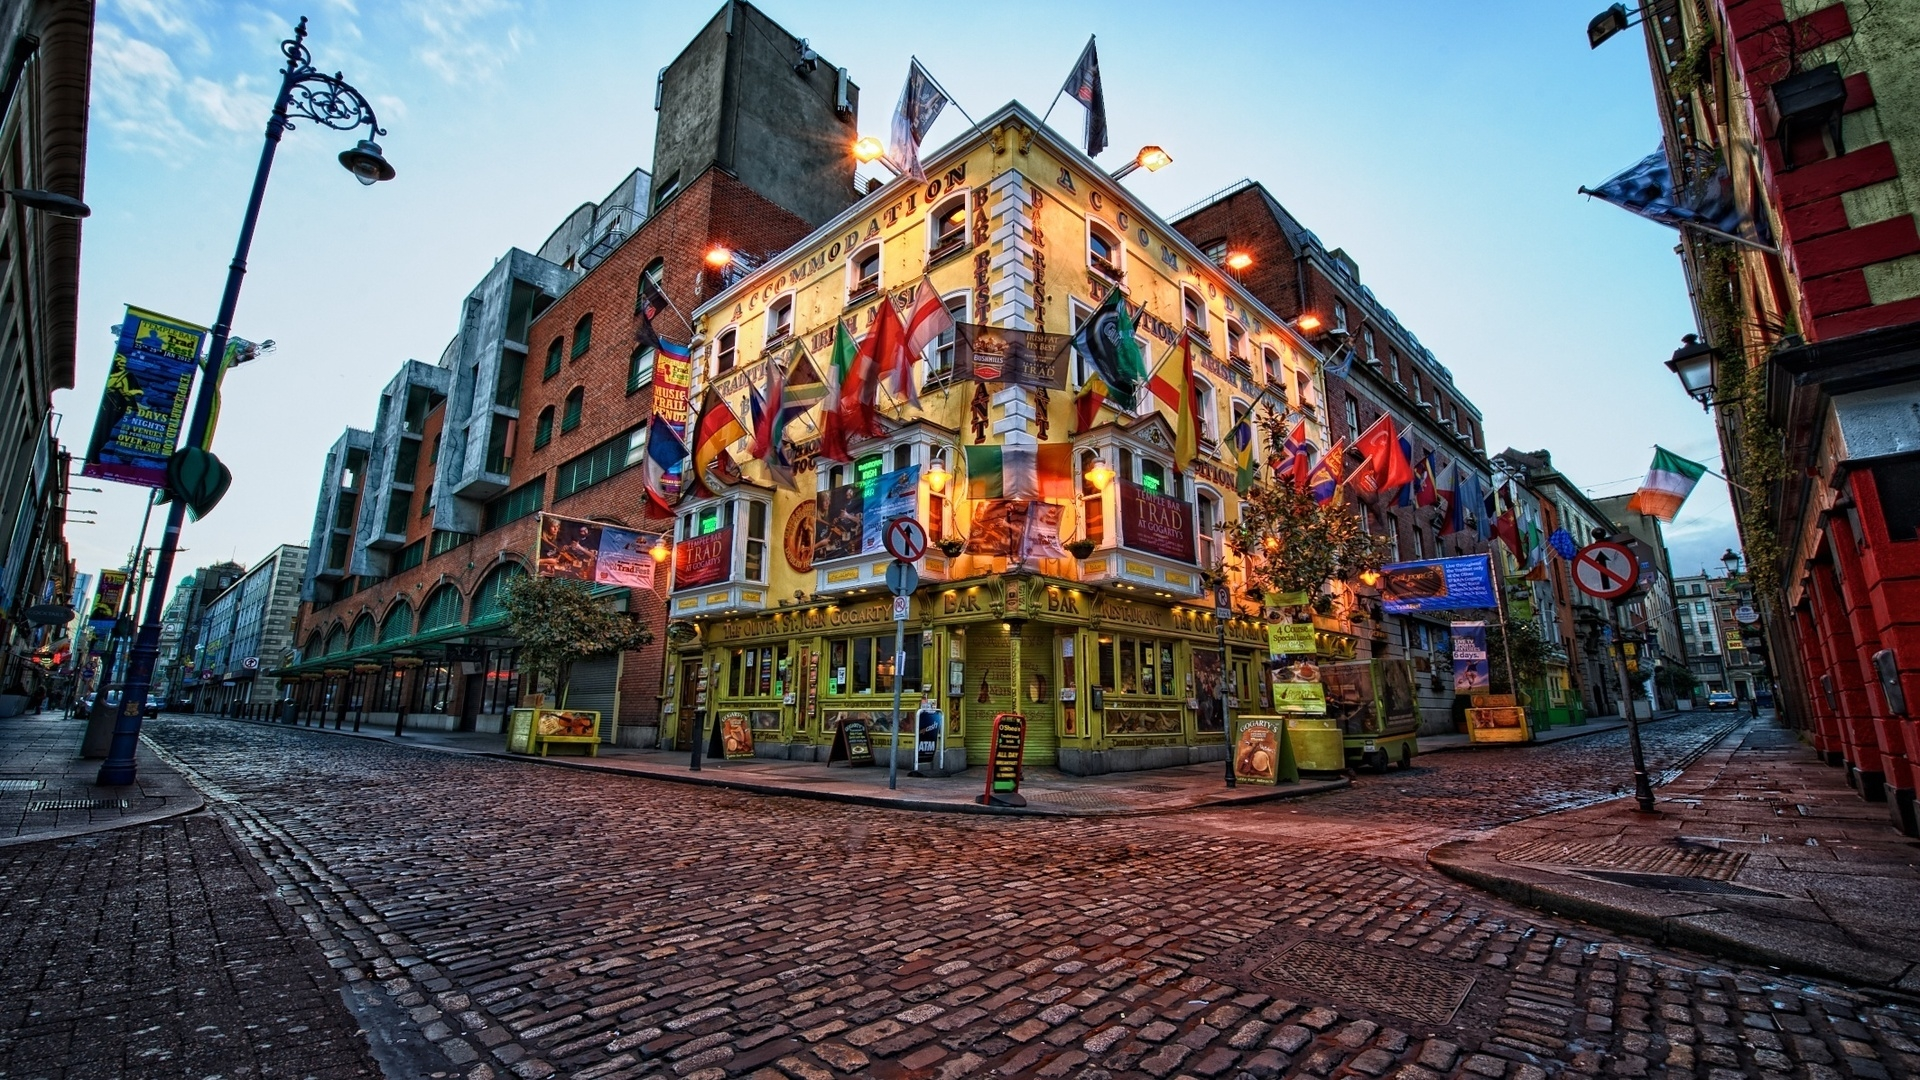 man made dublin ireland cityscape square building street flag brick city man made hdr wallpaper